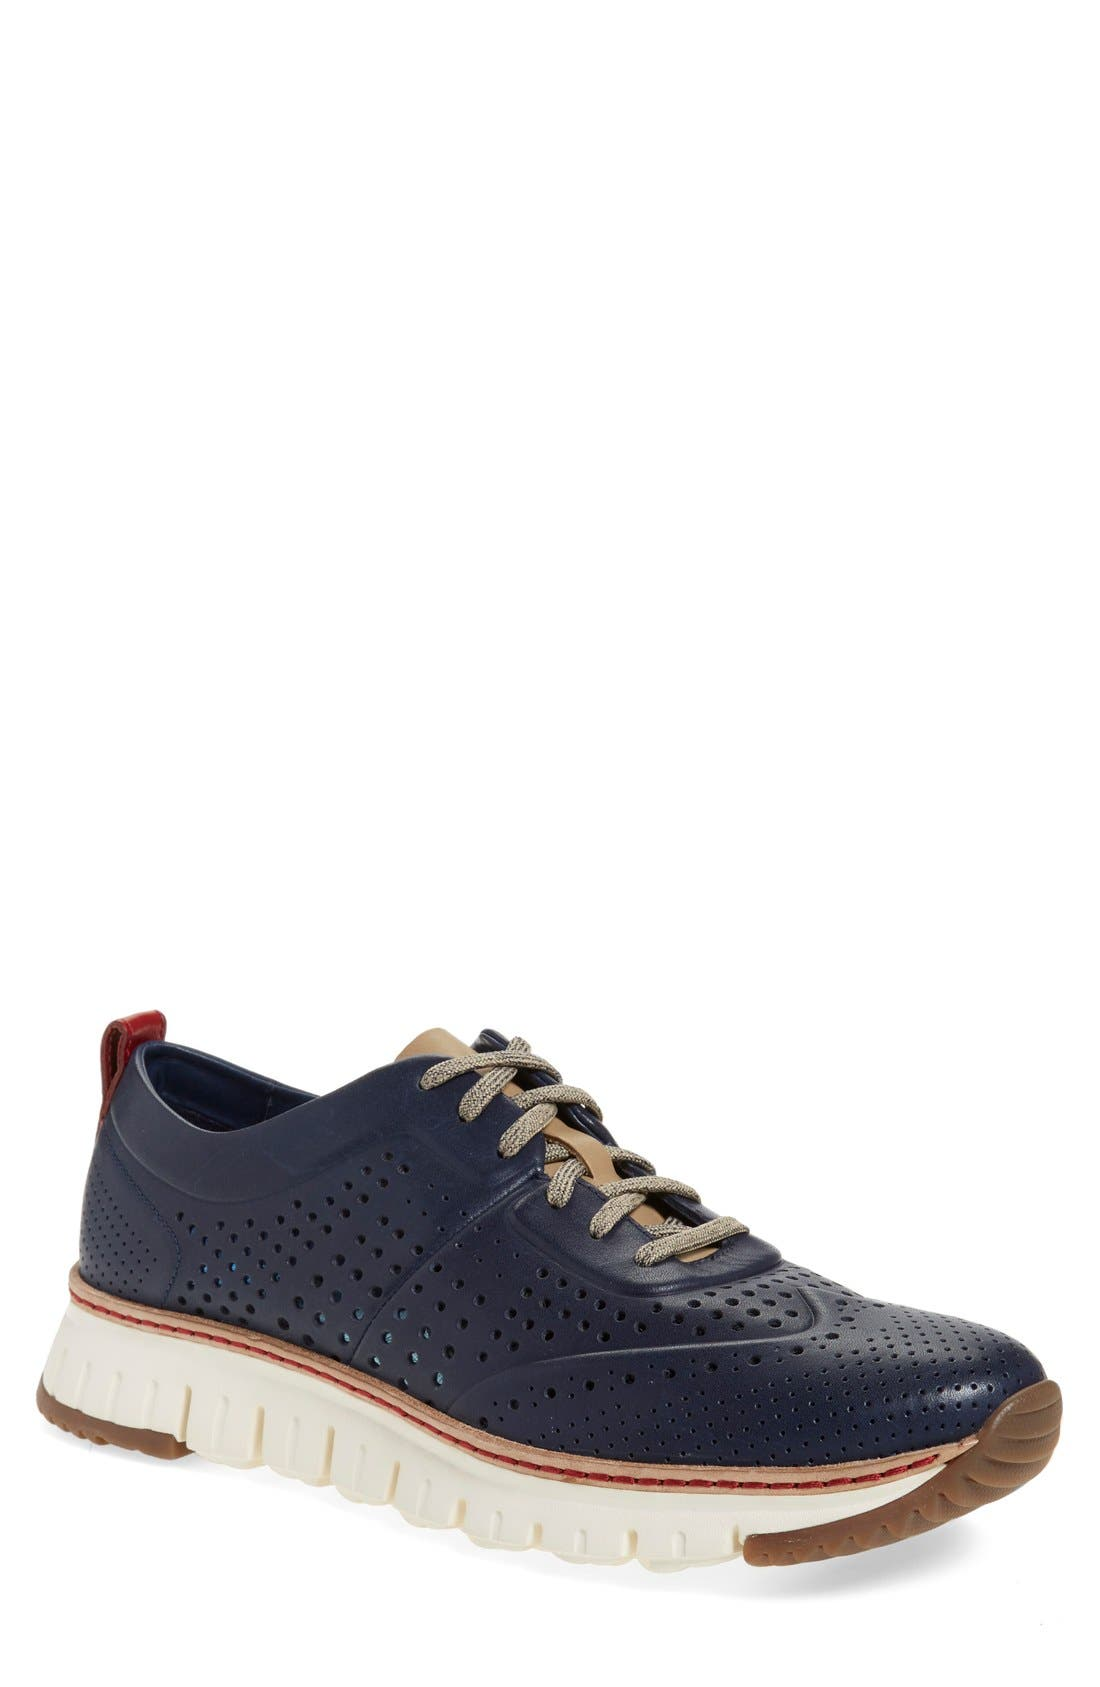 COLE HAAN,                             'ZerøGrand' Perforated Wingtip Sneaker,                             Main thumbnail 1, color,                             400